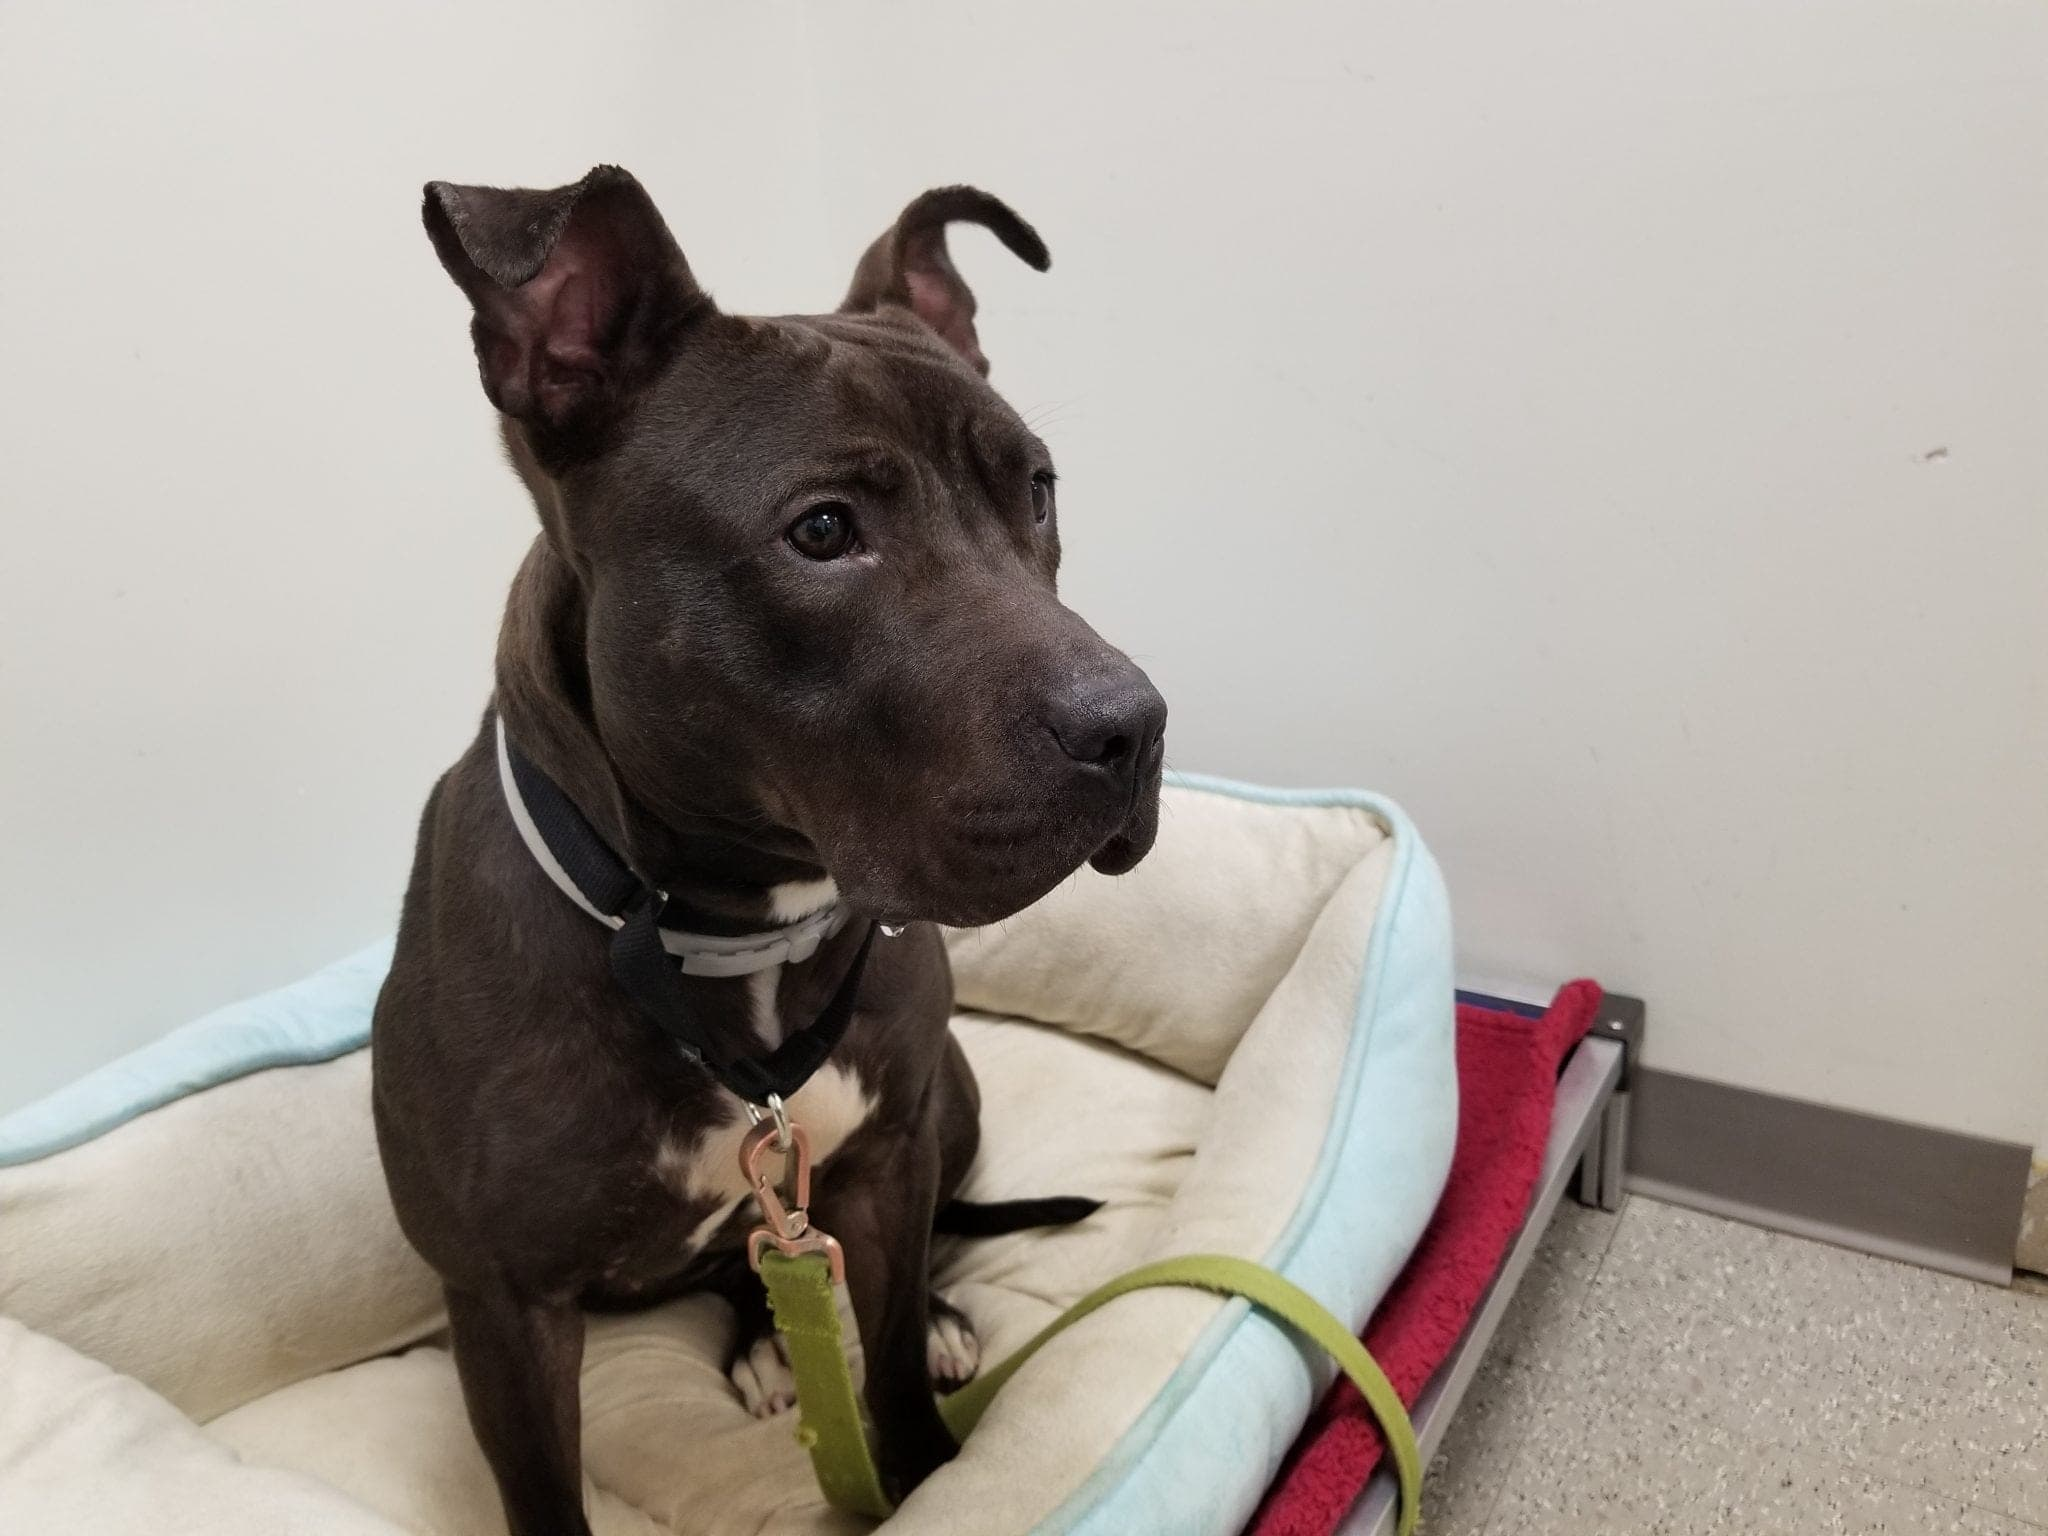 Kinsleigh the Pit bull greets visitors